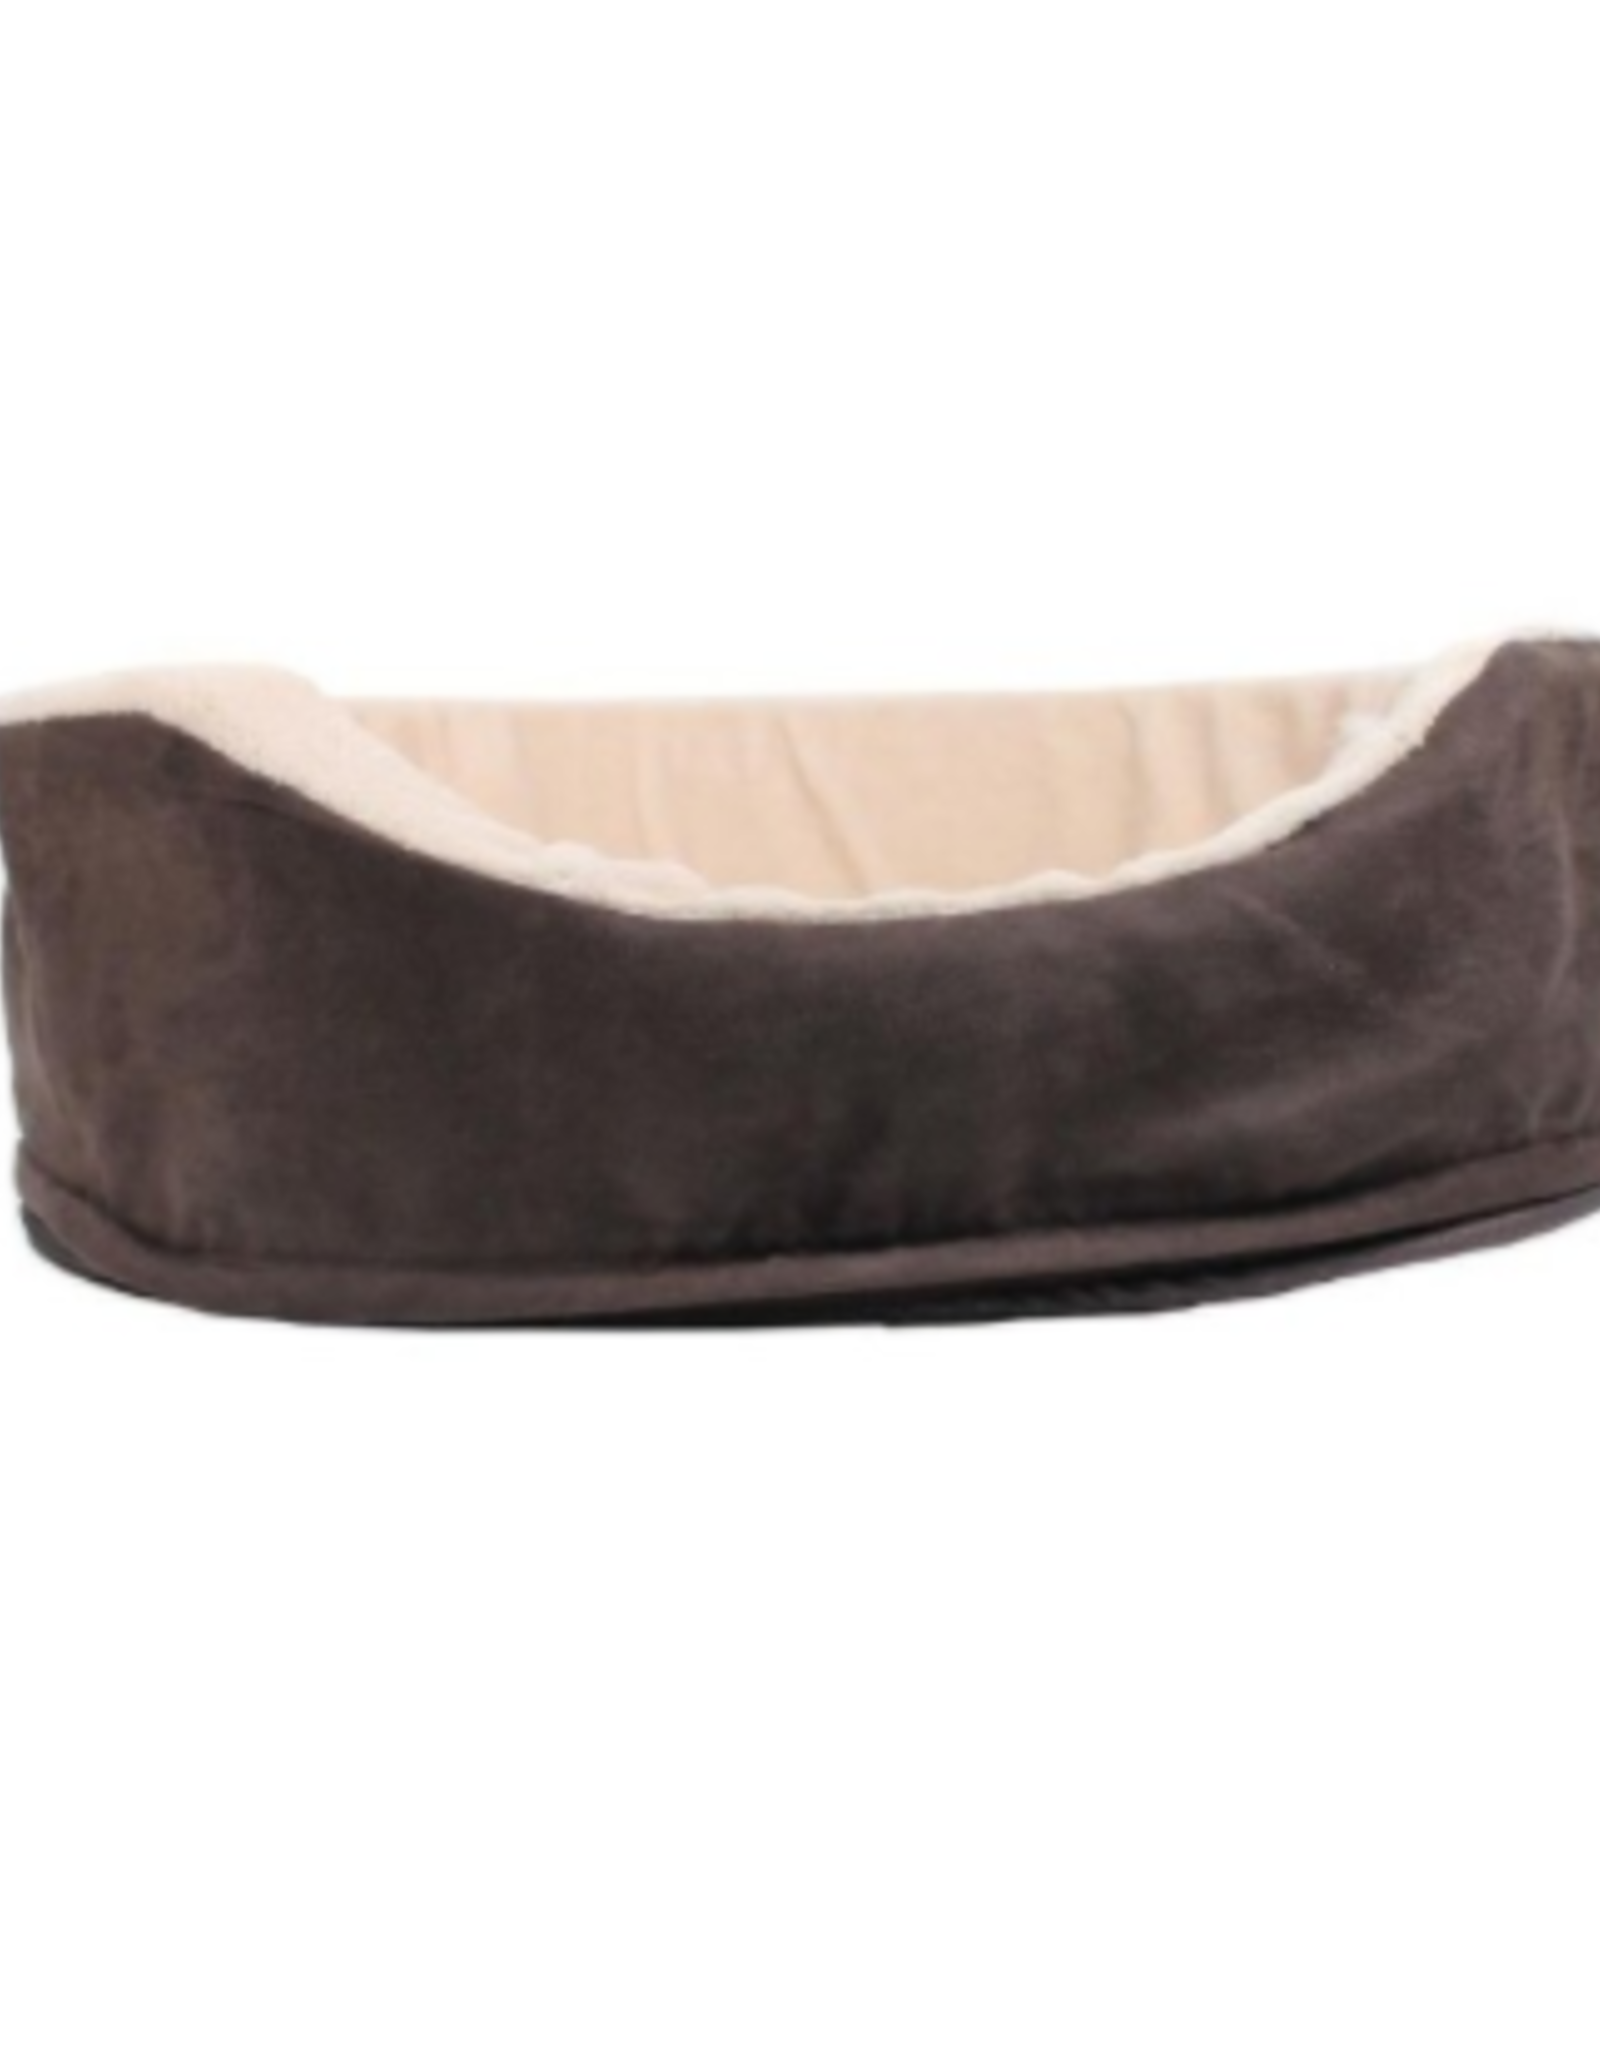 DOSKOCIL MANUFACTURING CO PLUSH SUEDE LOUNGER BED 21IN